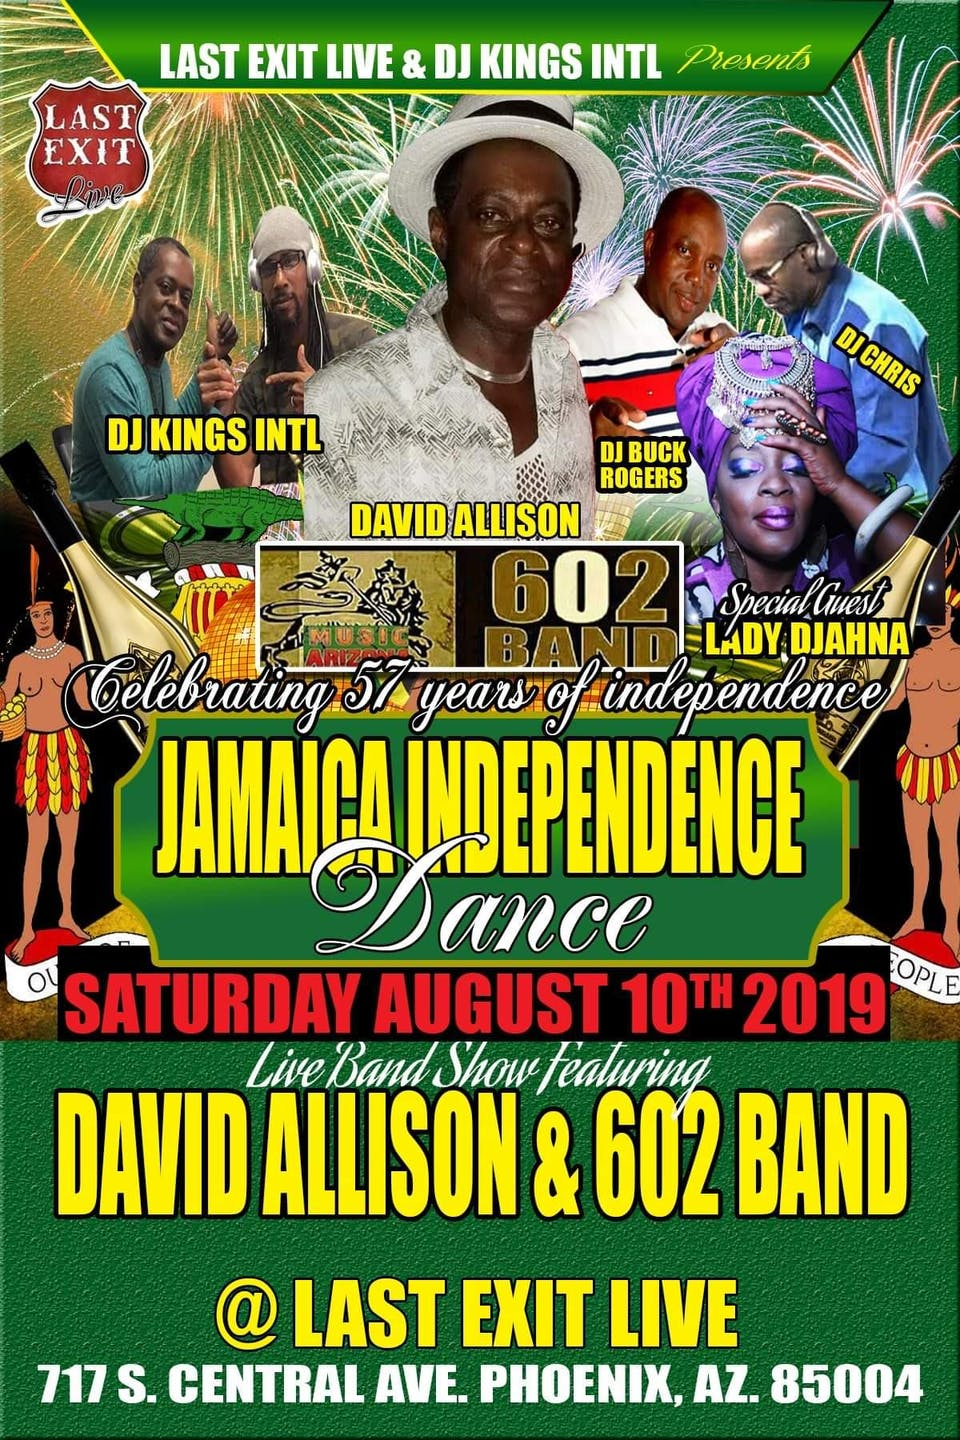 Jamaican Independence Dance